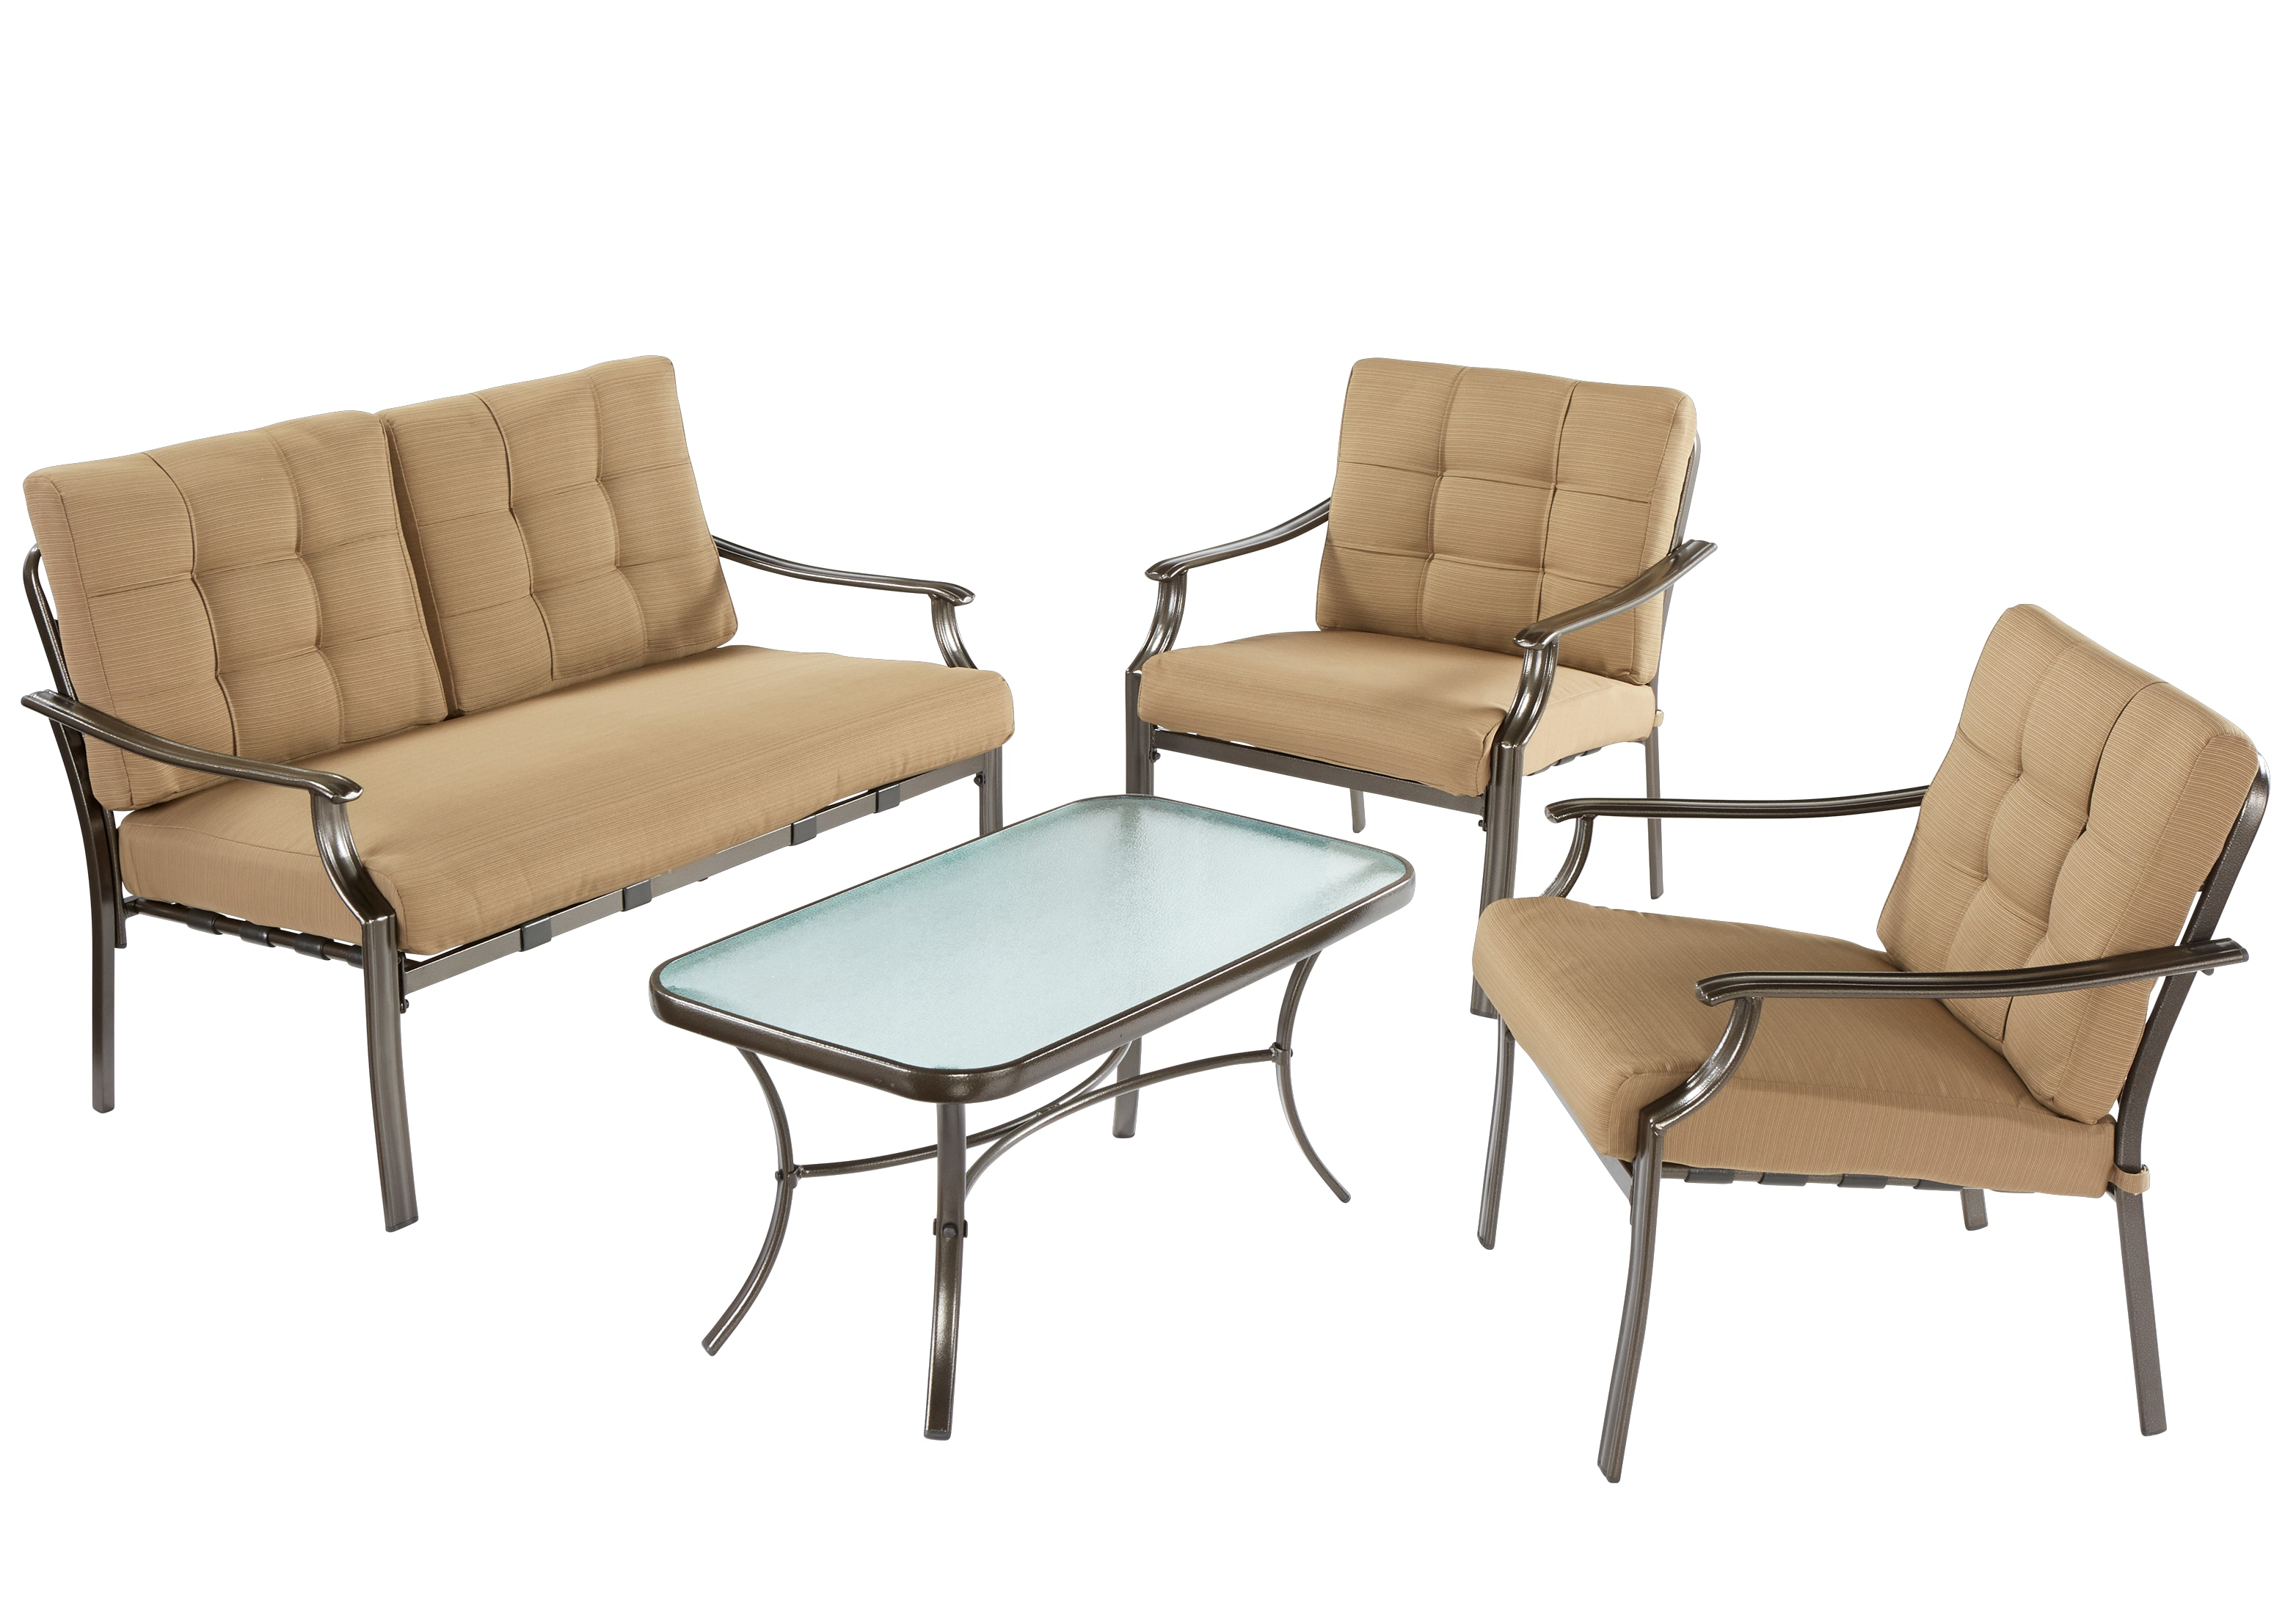 Pensacola Tan 4 Pc Outdoor Living Room Set Living Room Sets Beige inside Outdoor Living Room Sets